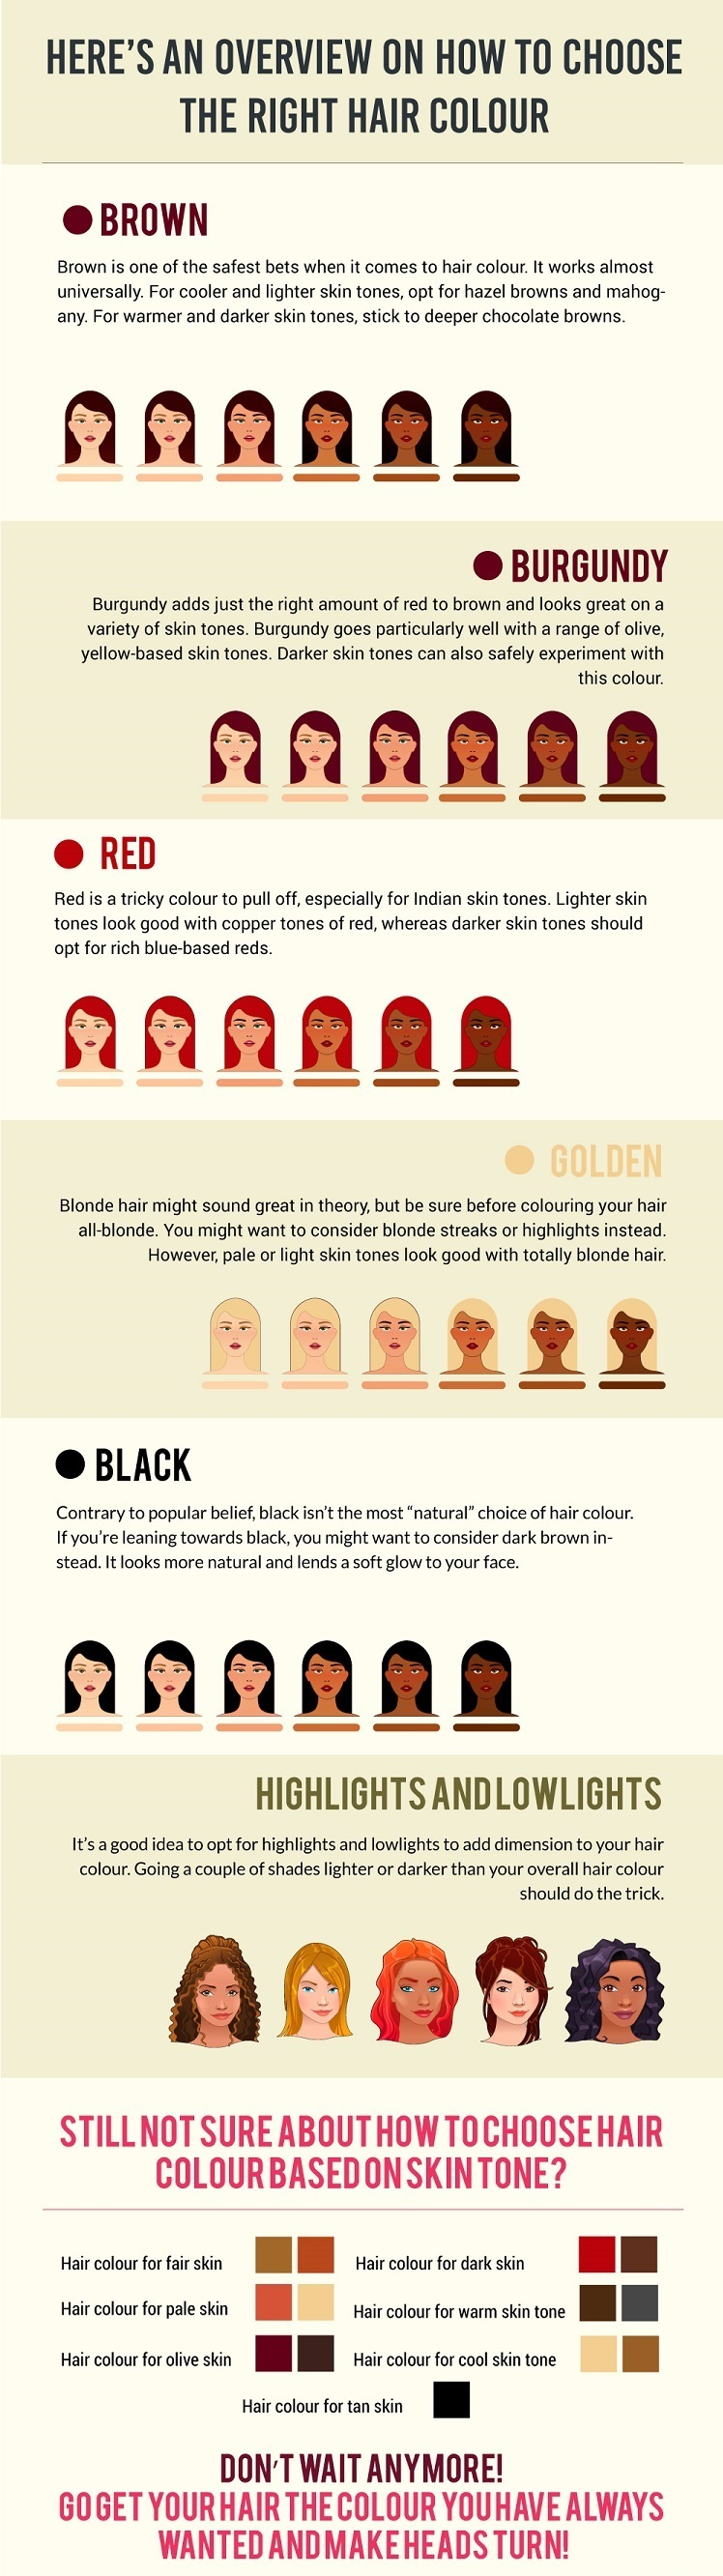 How To Choose Hair Color Based On Skin Tone